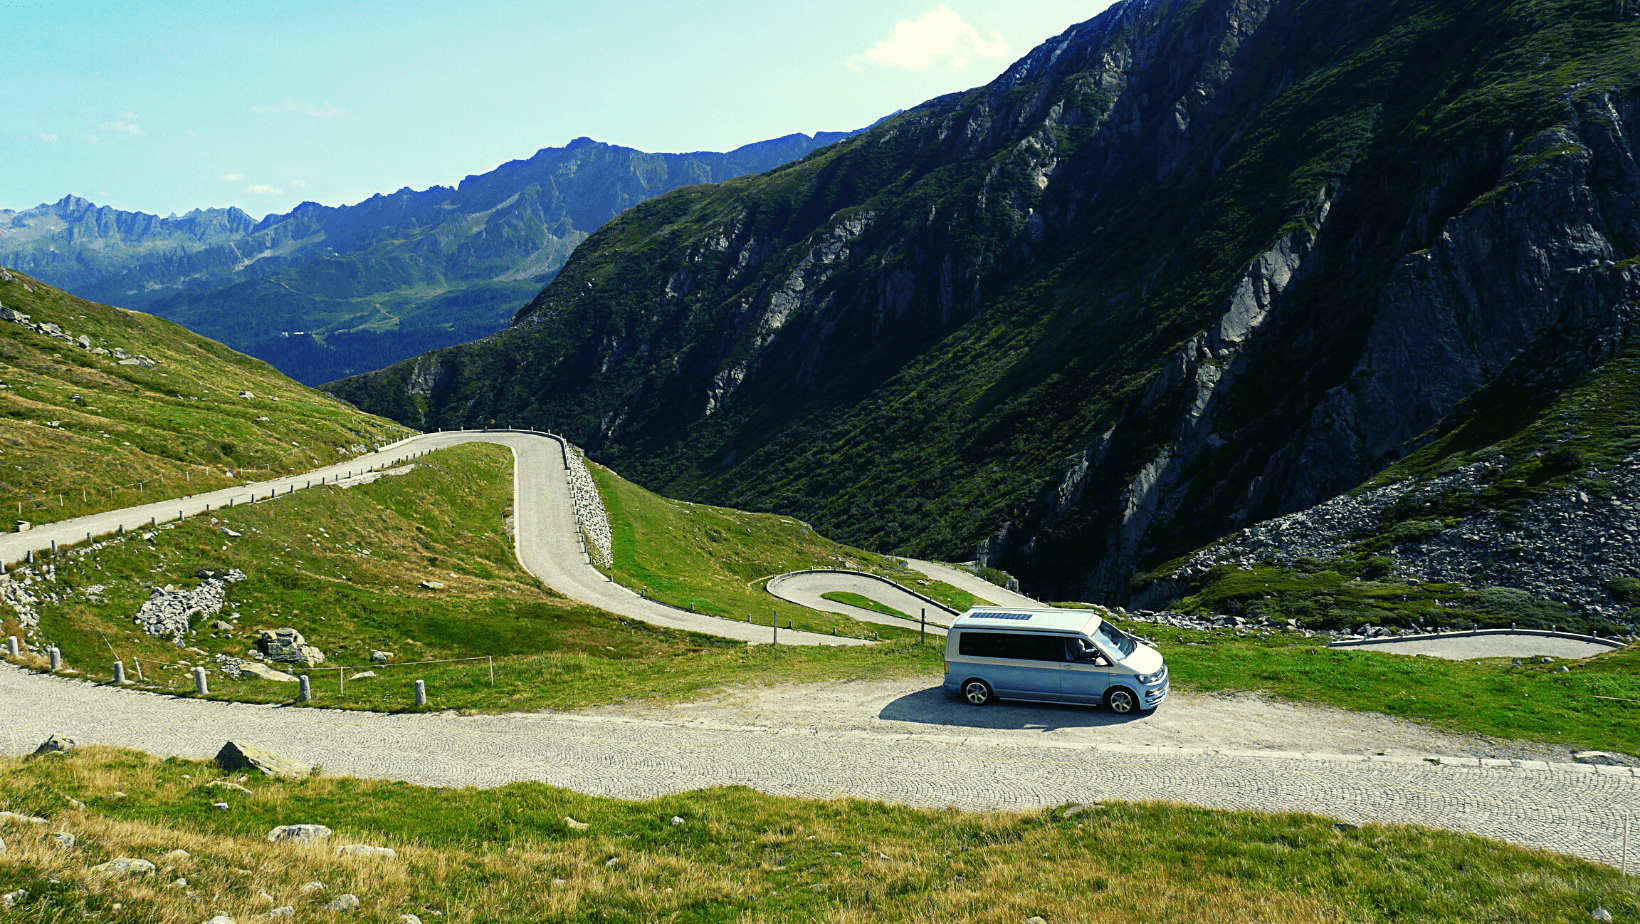 VW Transporter Campervan in the French mountains